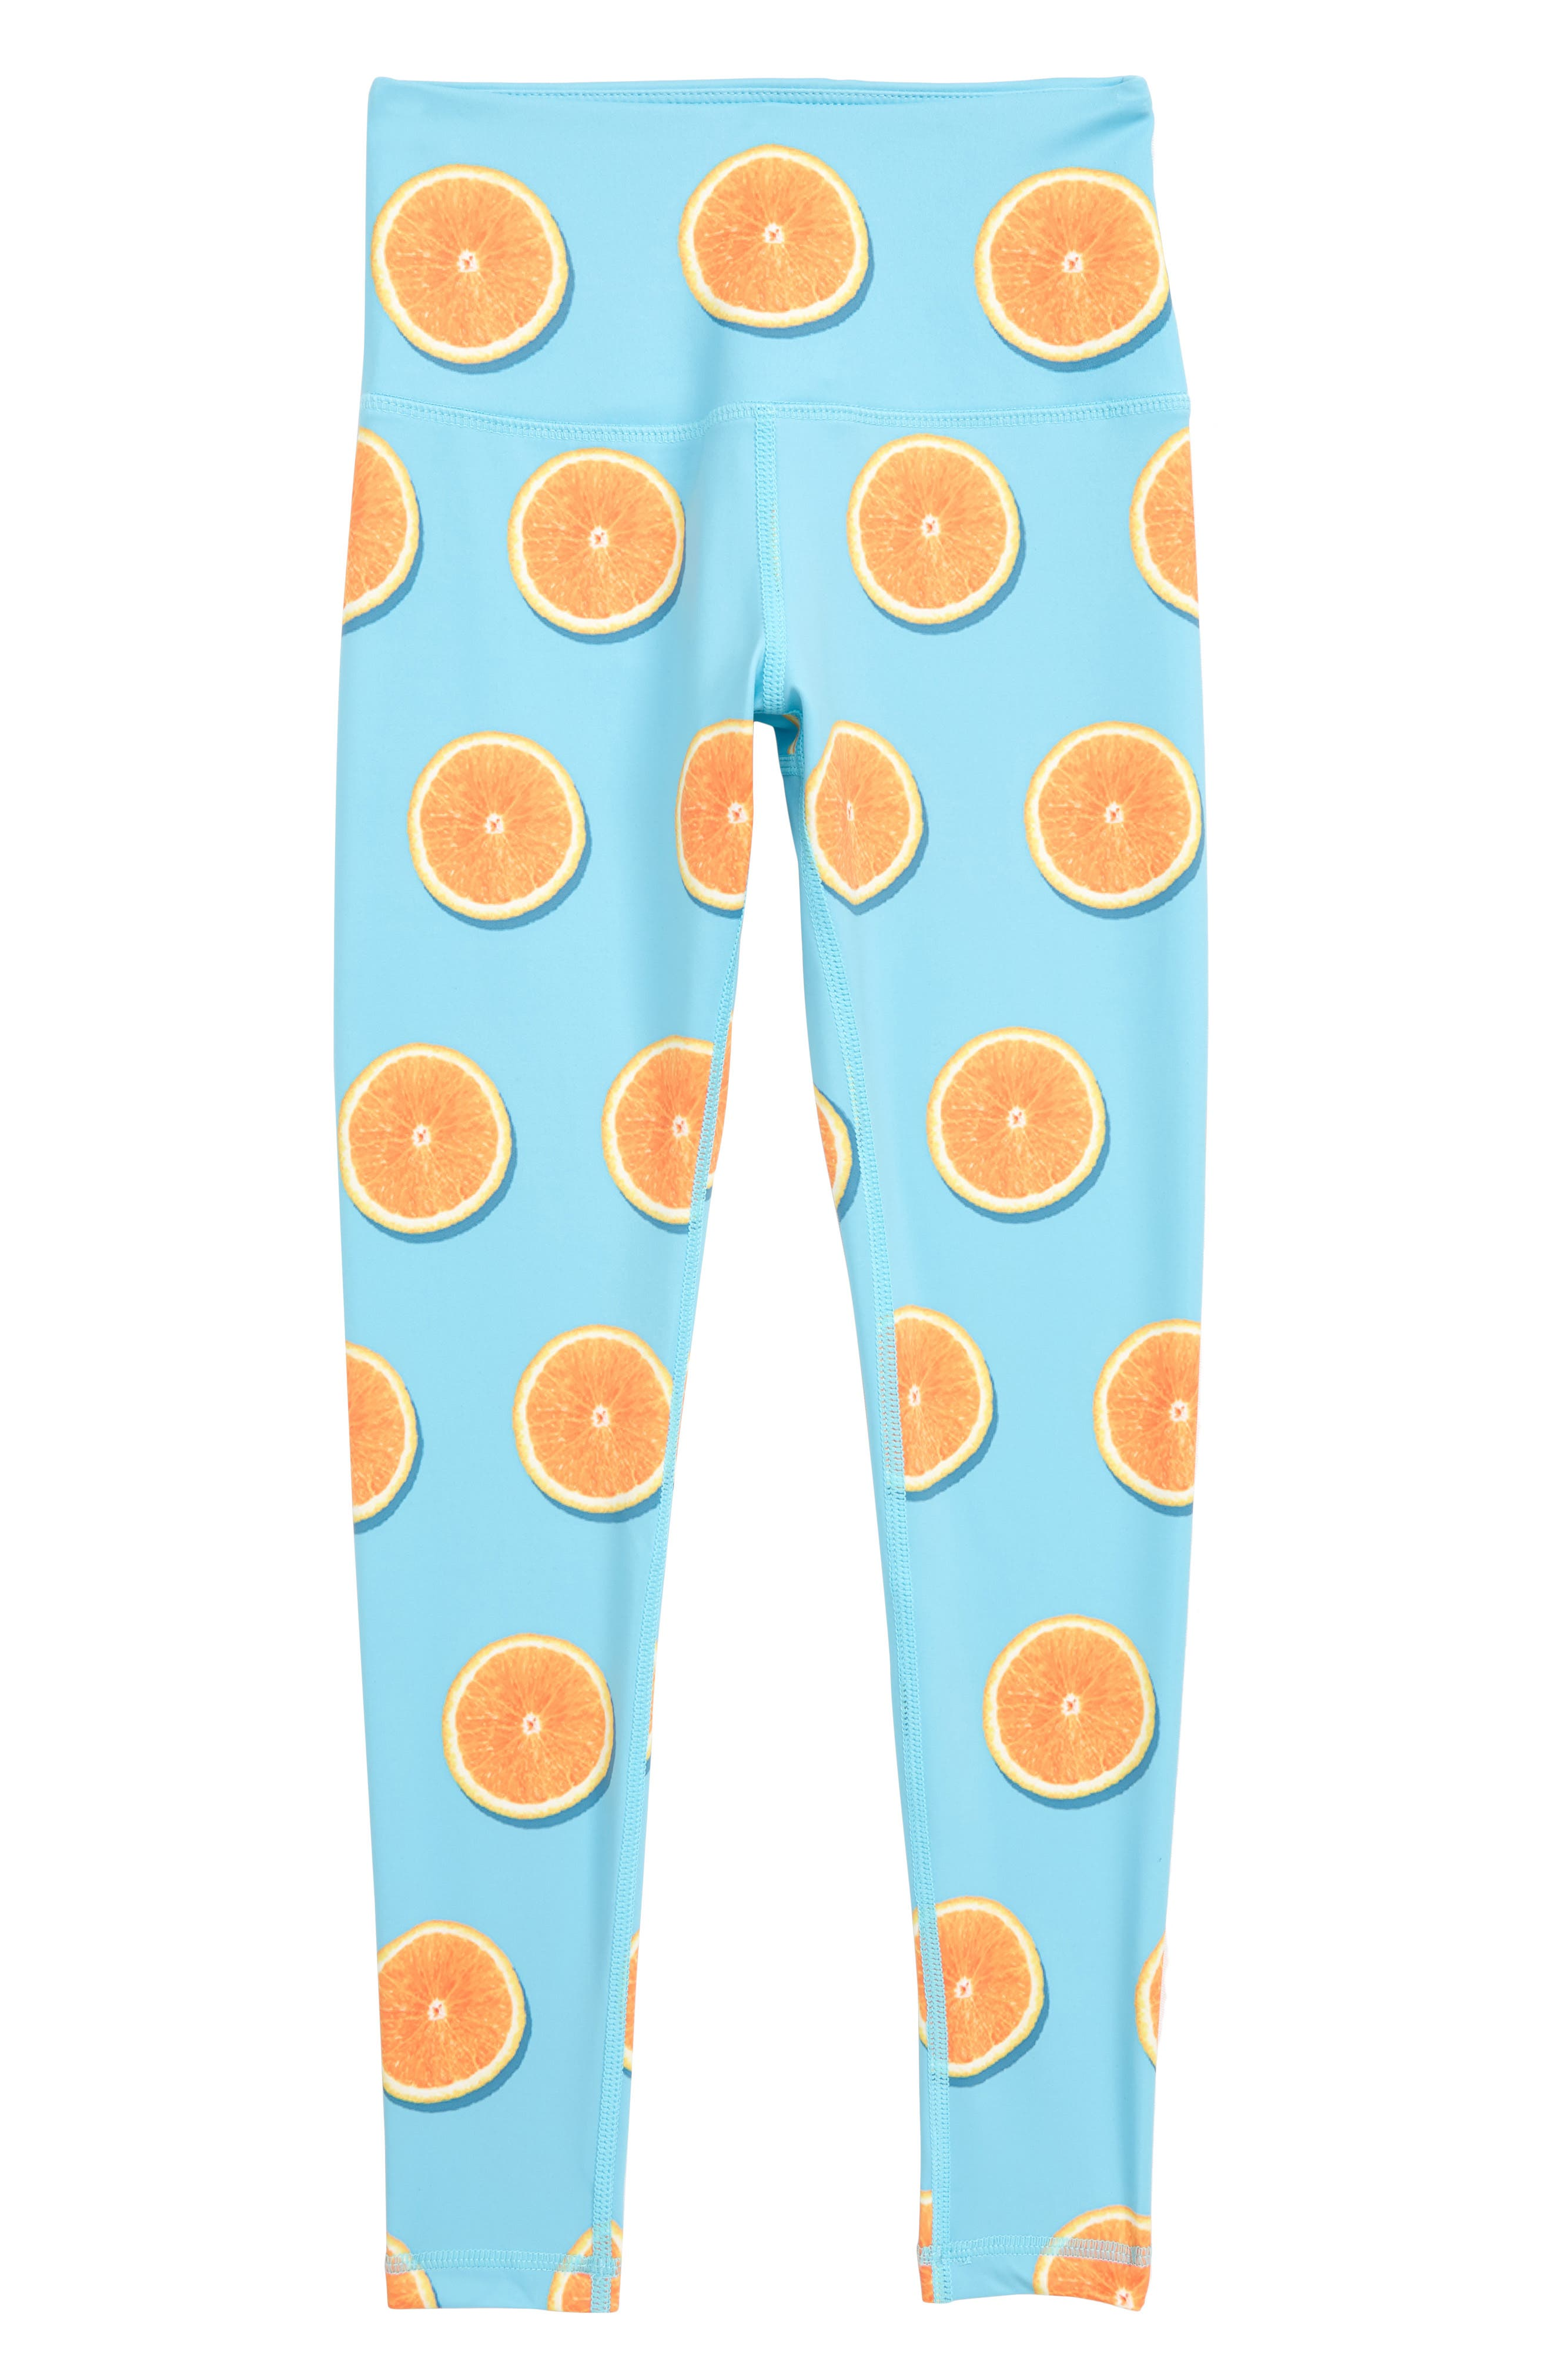 Oranges Of My Eyes Yoga Pants,                             Main thumbnail 1, color,                             Blue